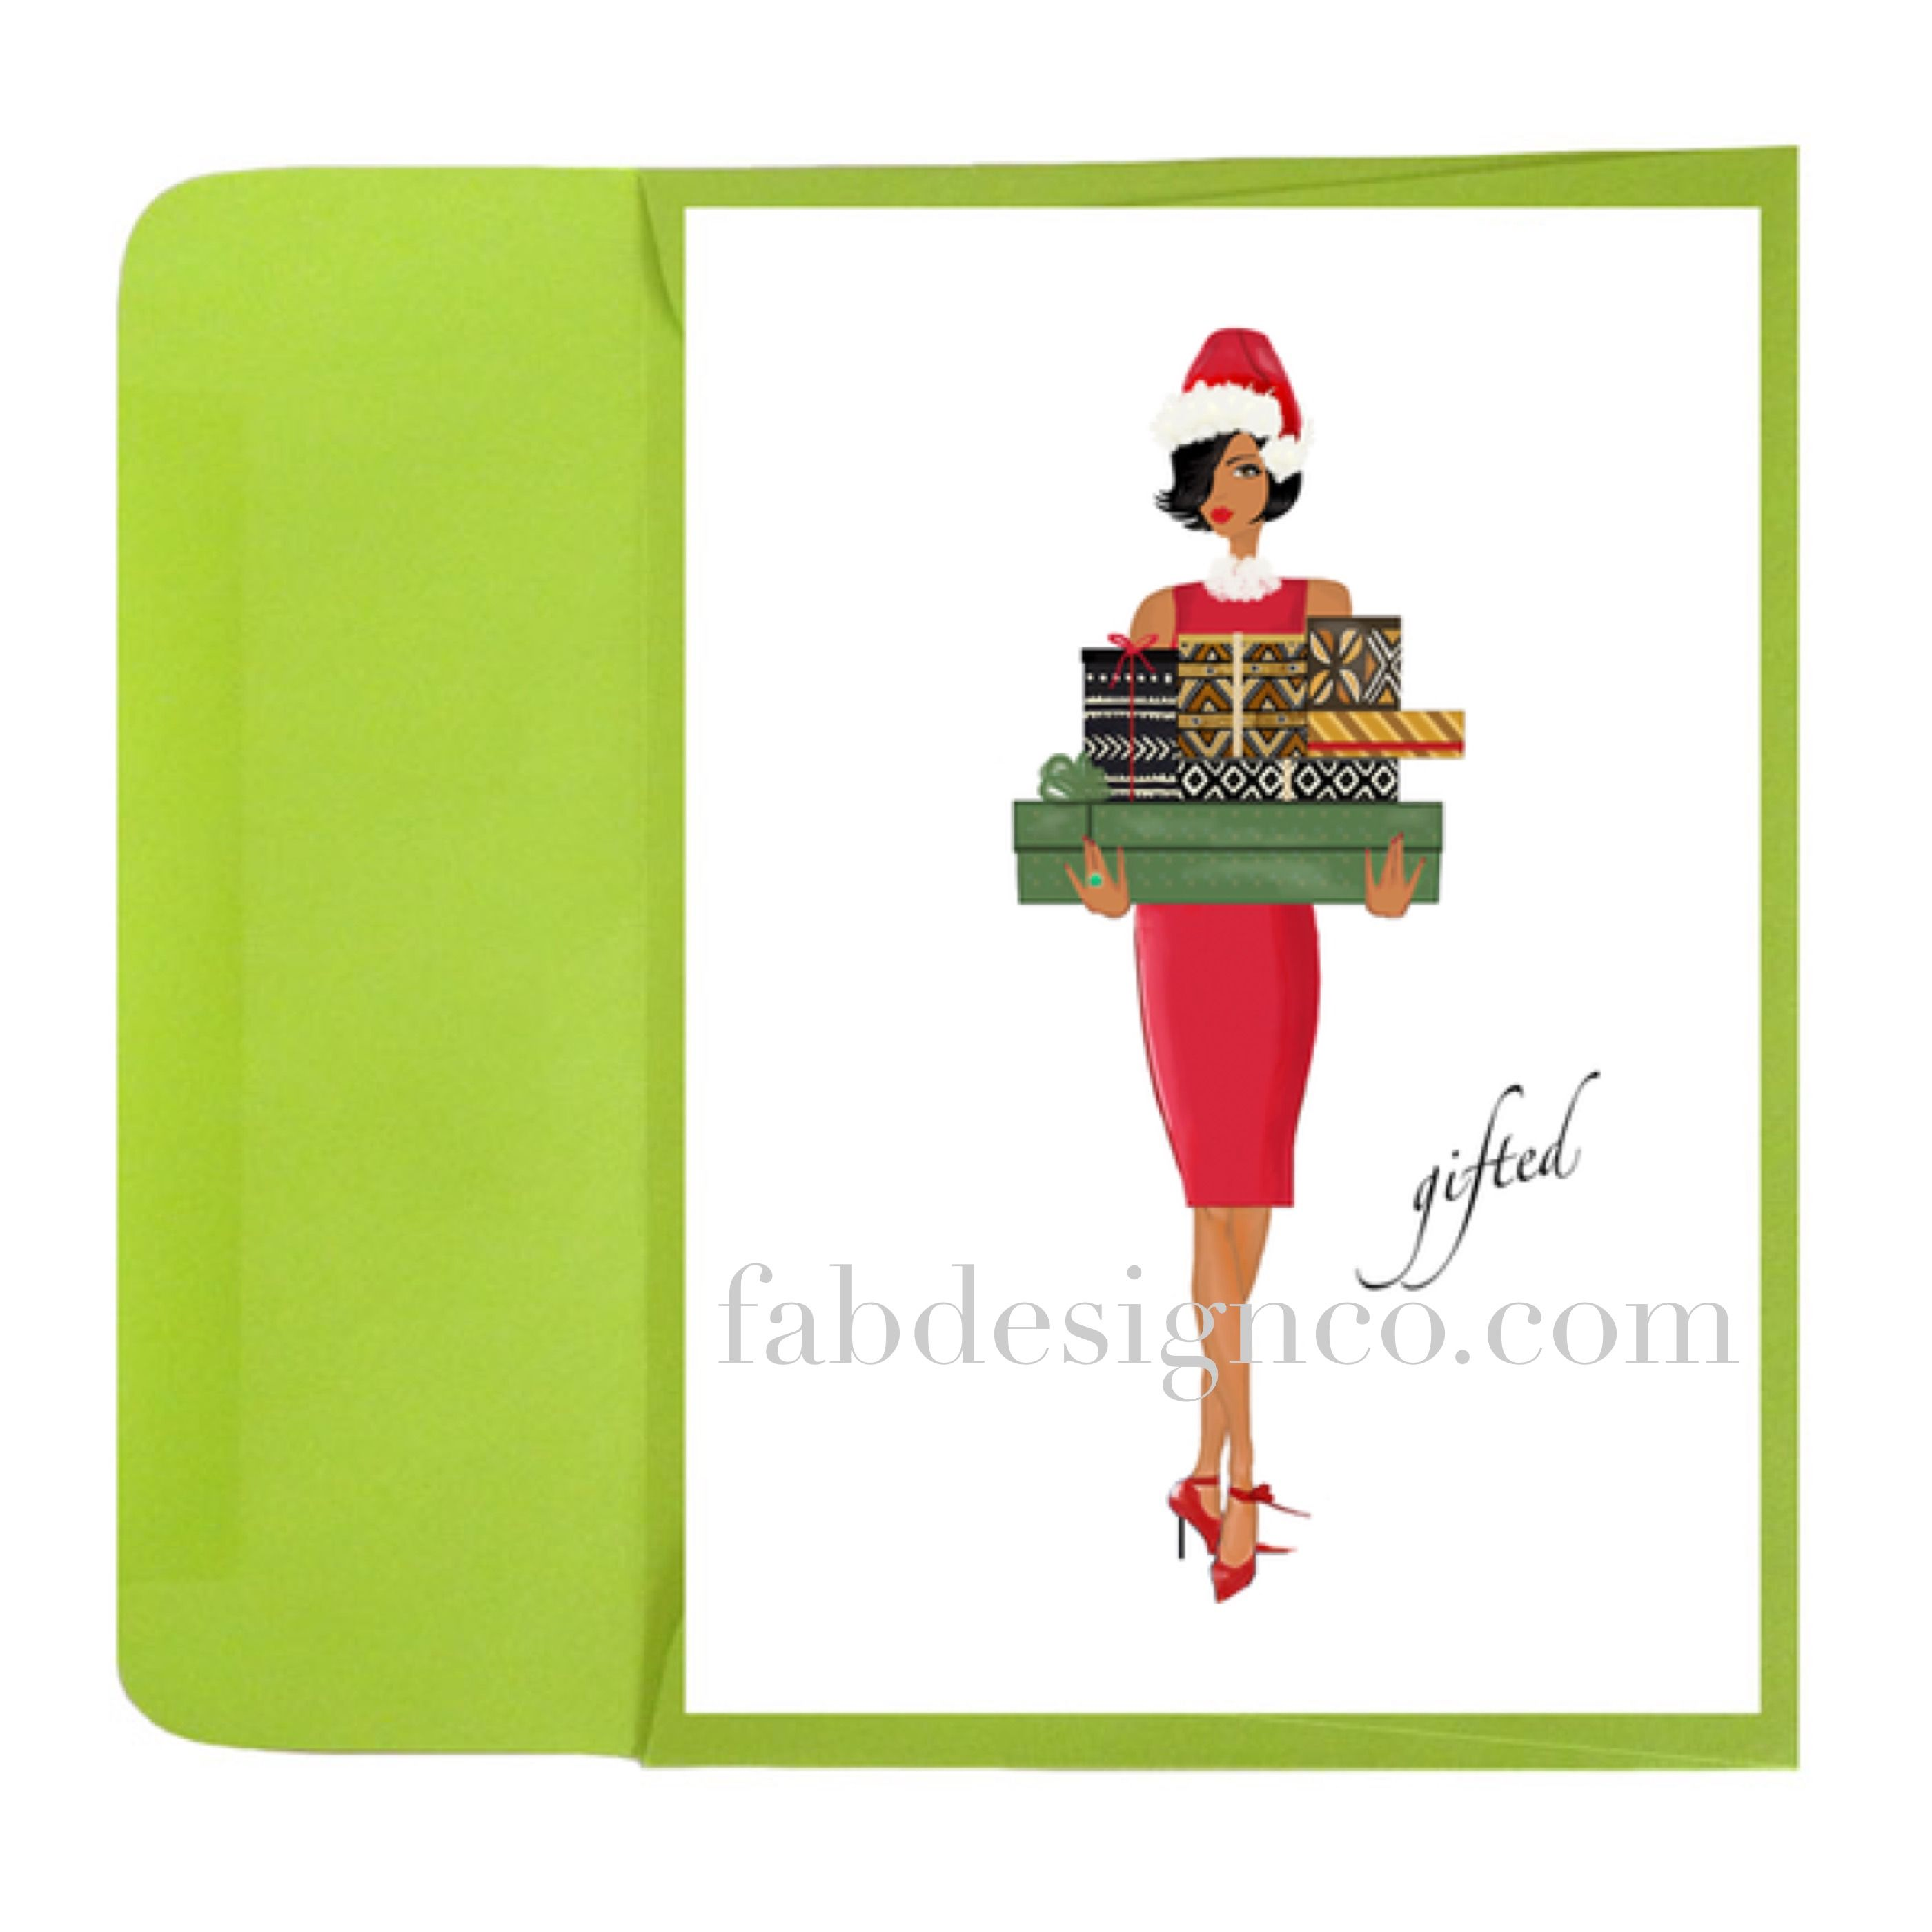 Gifted Holiday Card Black Christmas Christmas Greeting Cards And